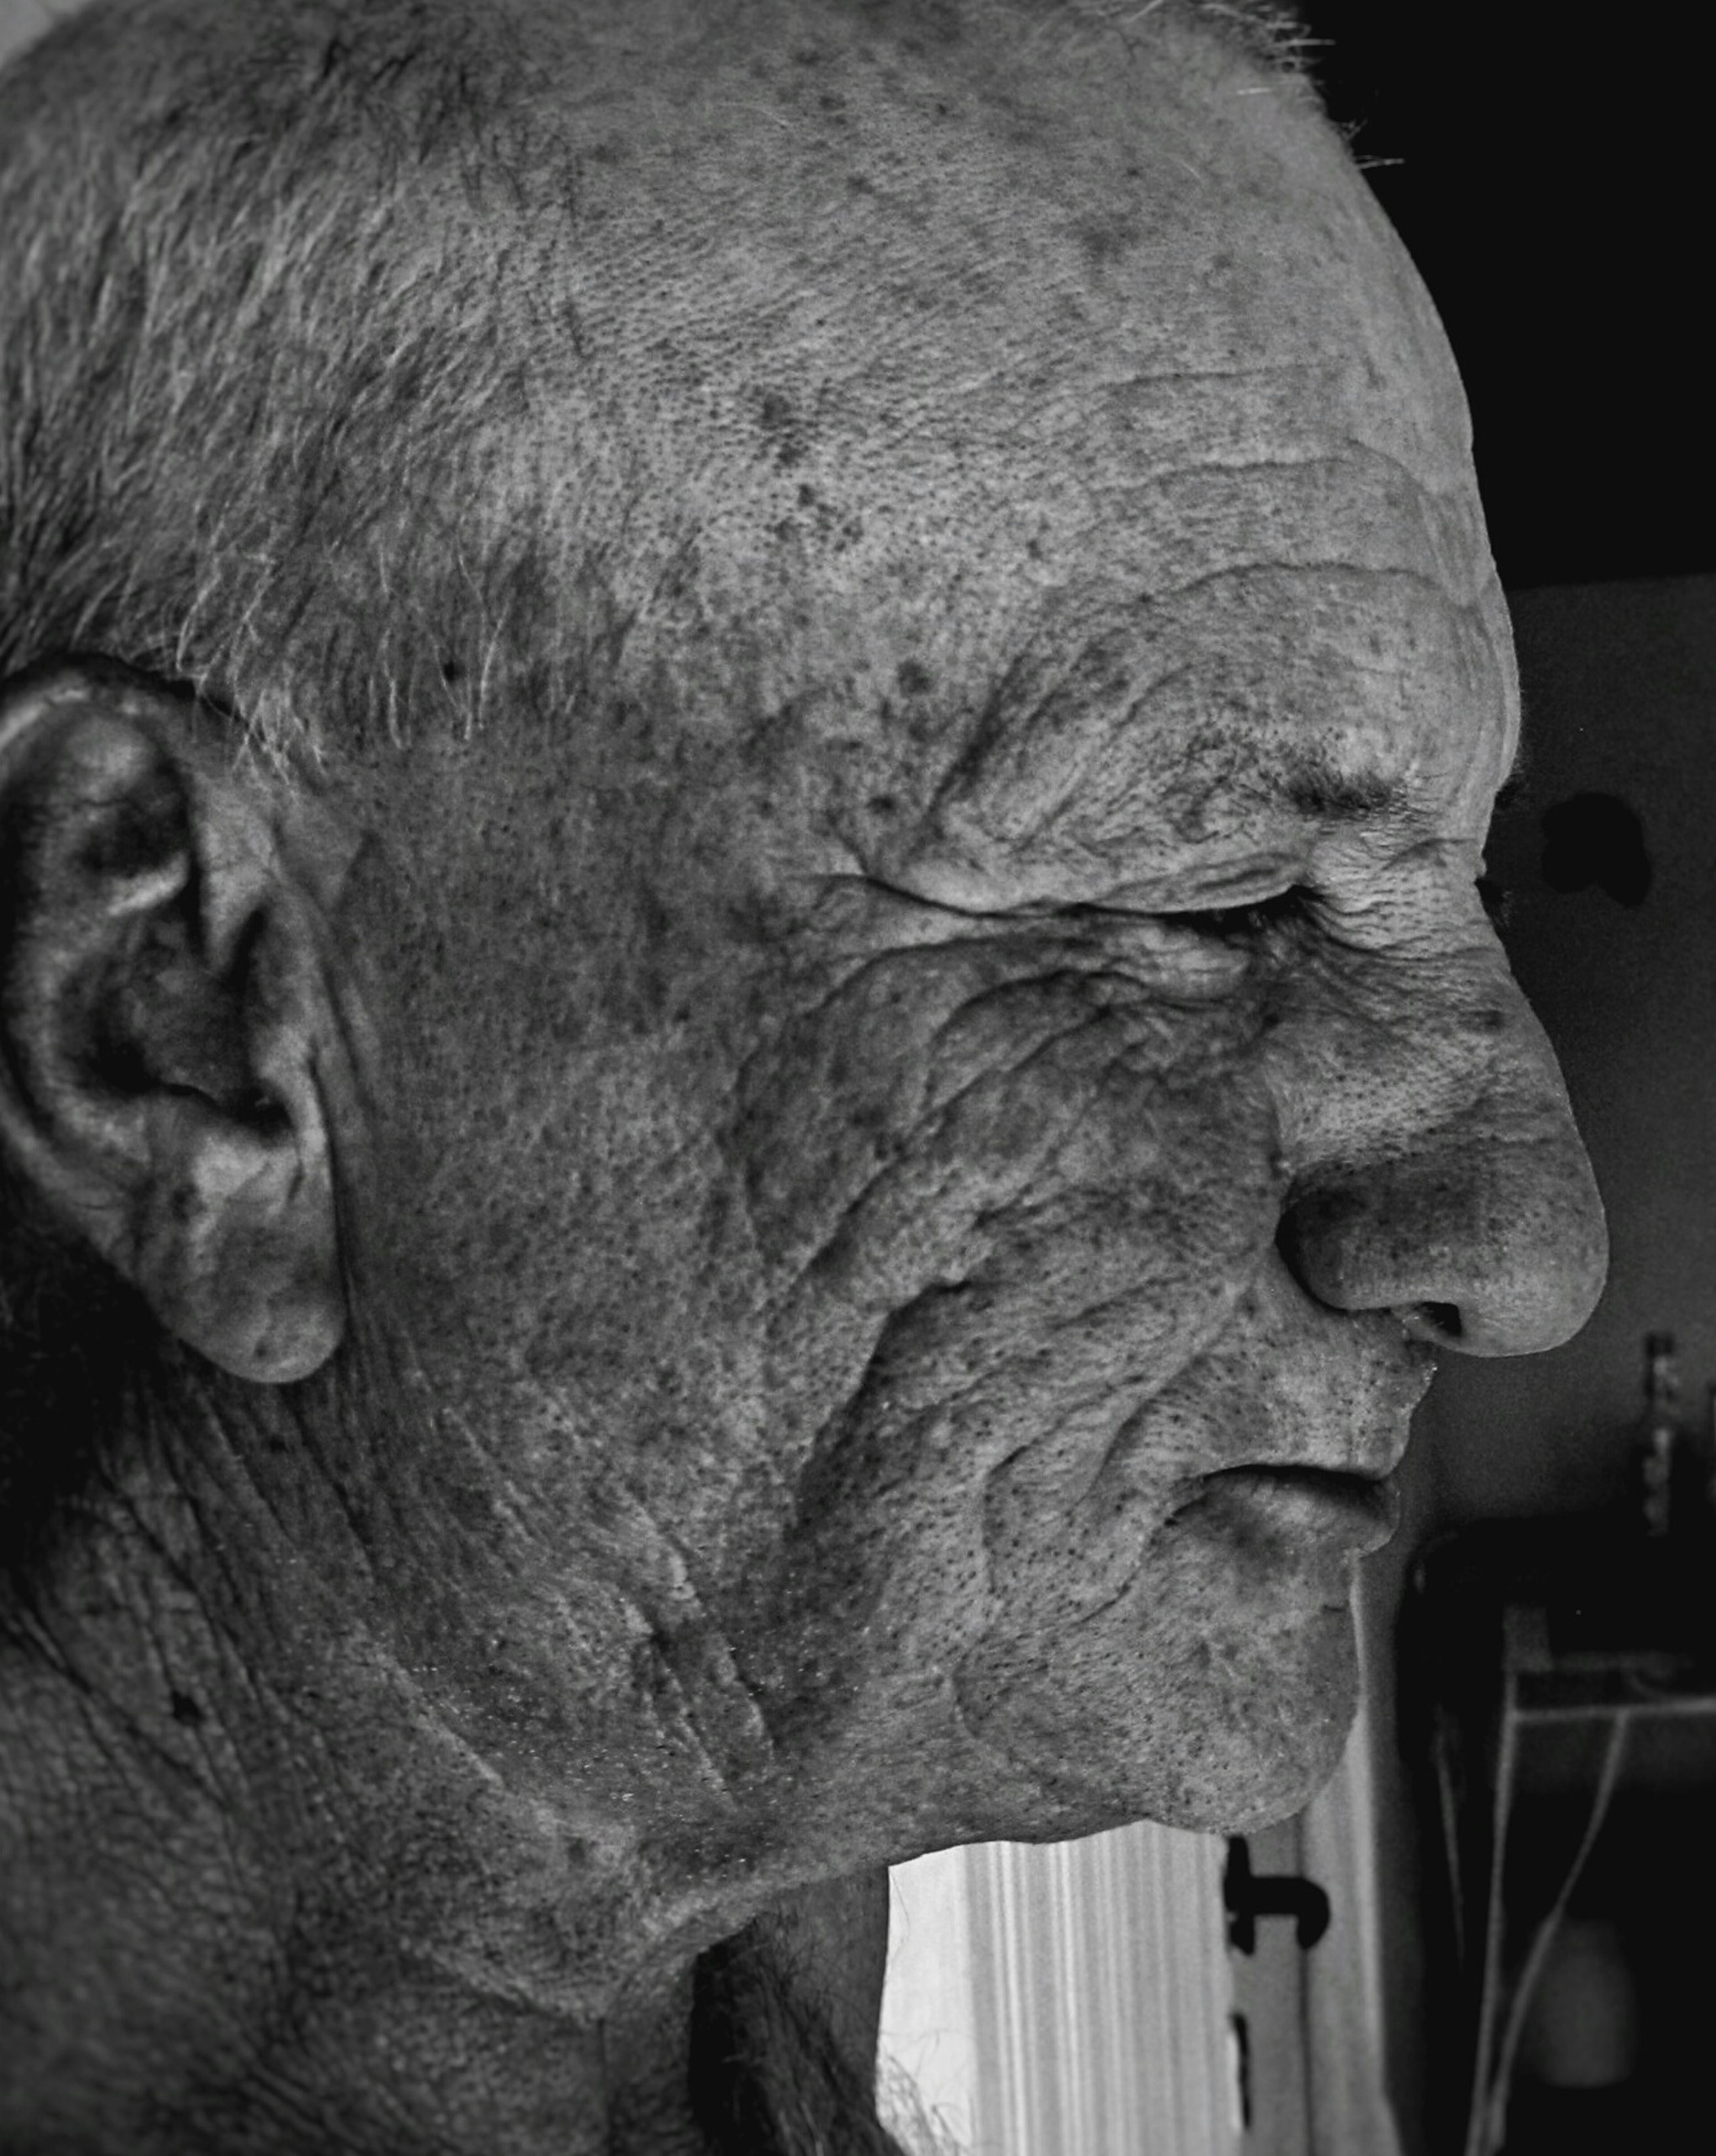 senior adult, statue, senior men, close-up, sculpture, outdoors, one person, real people, day, people